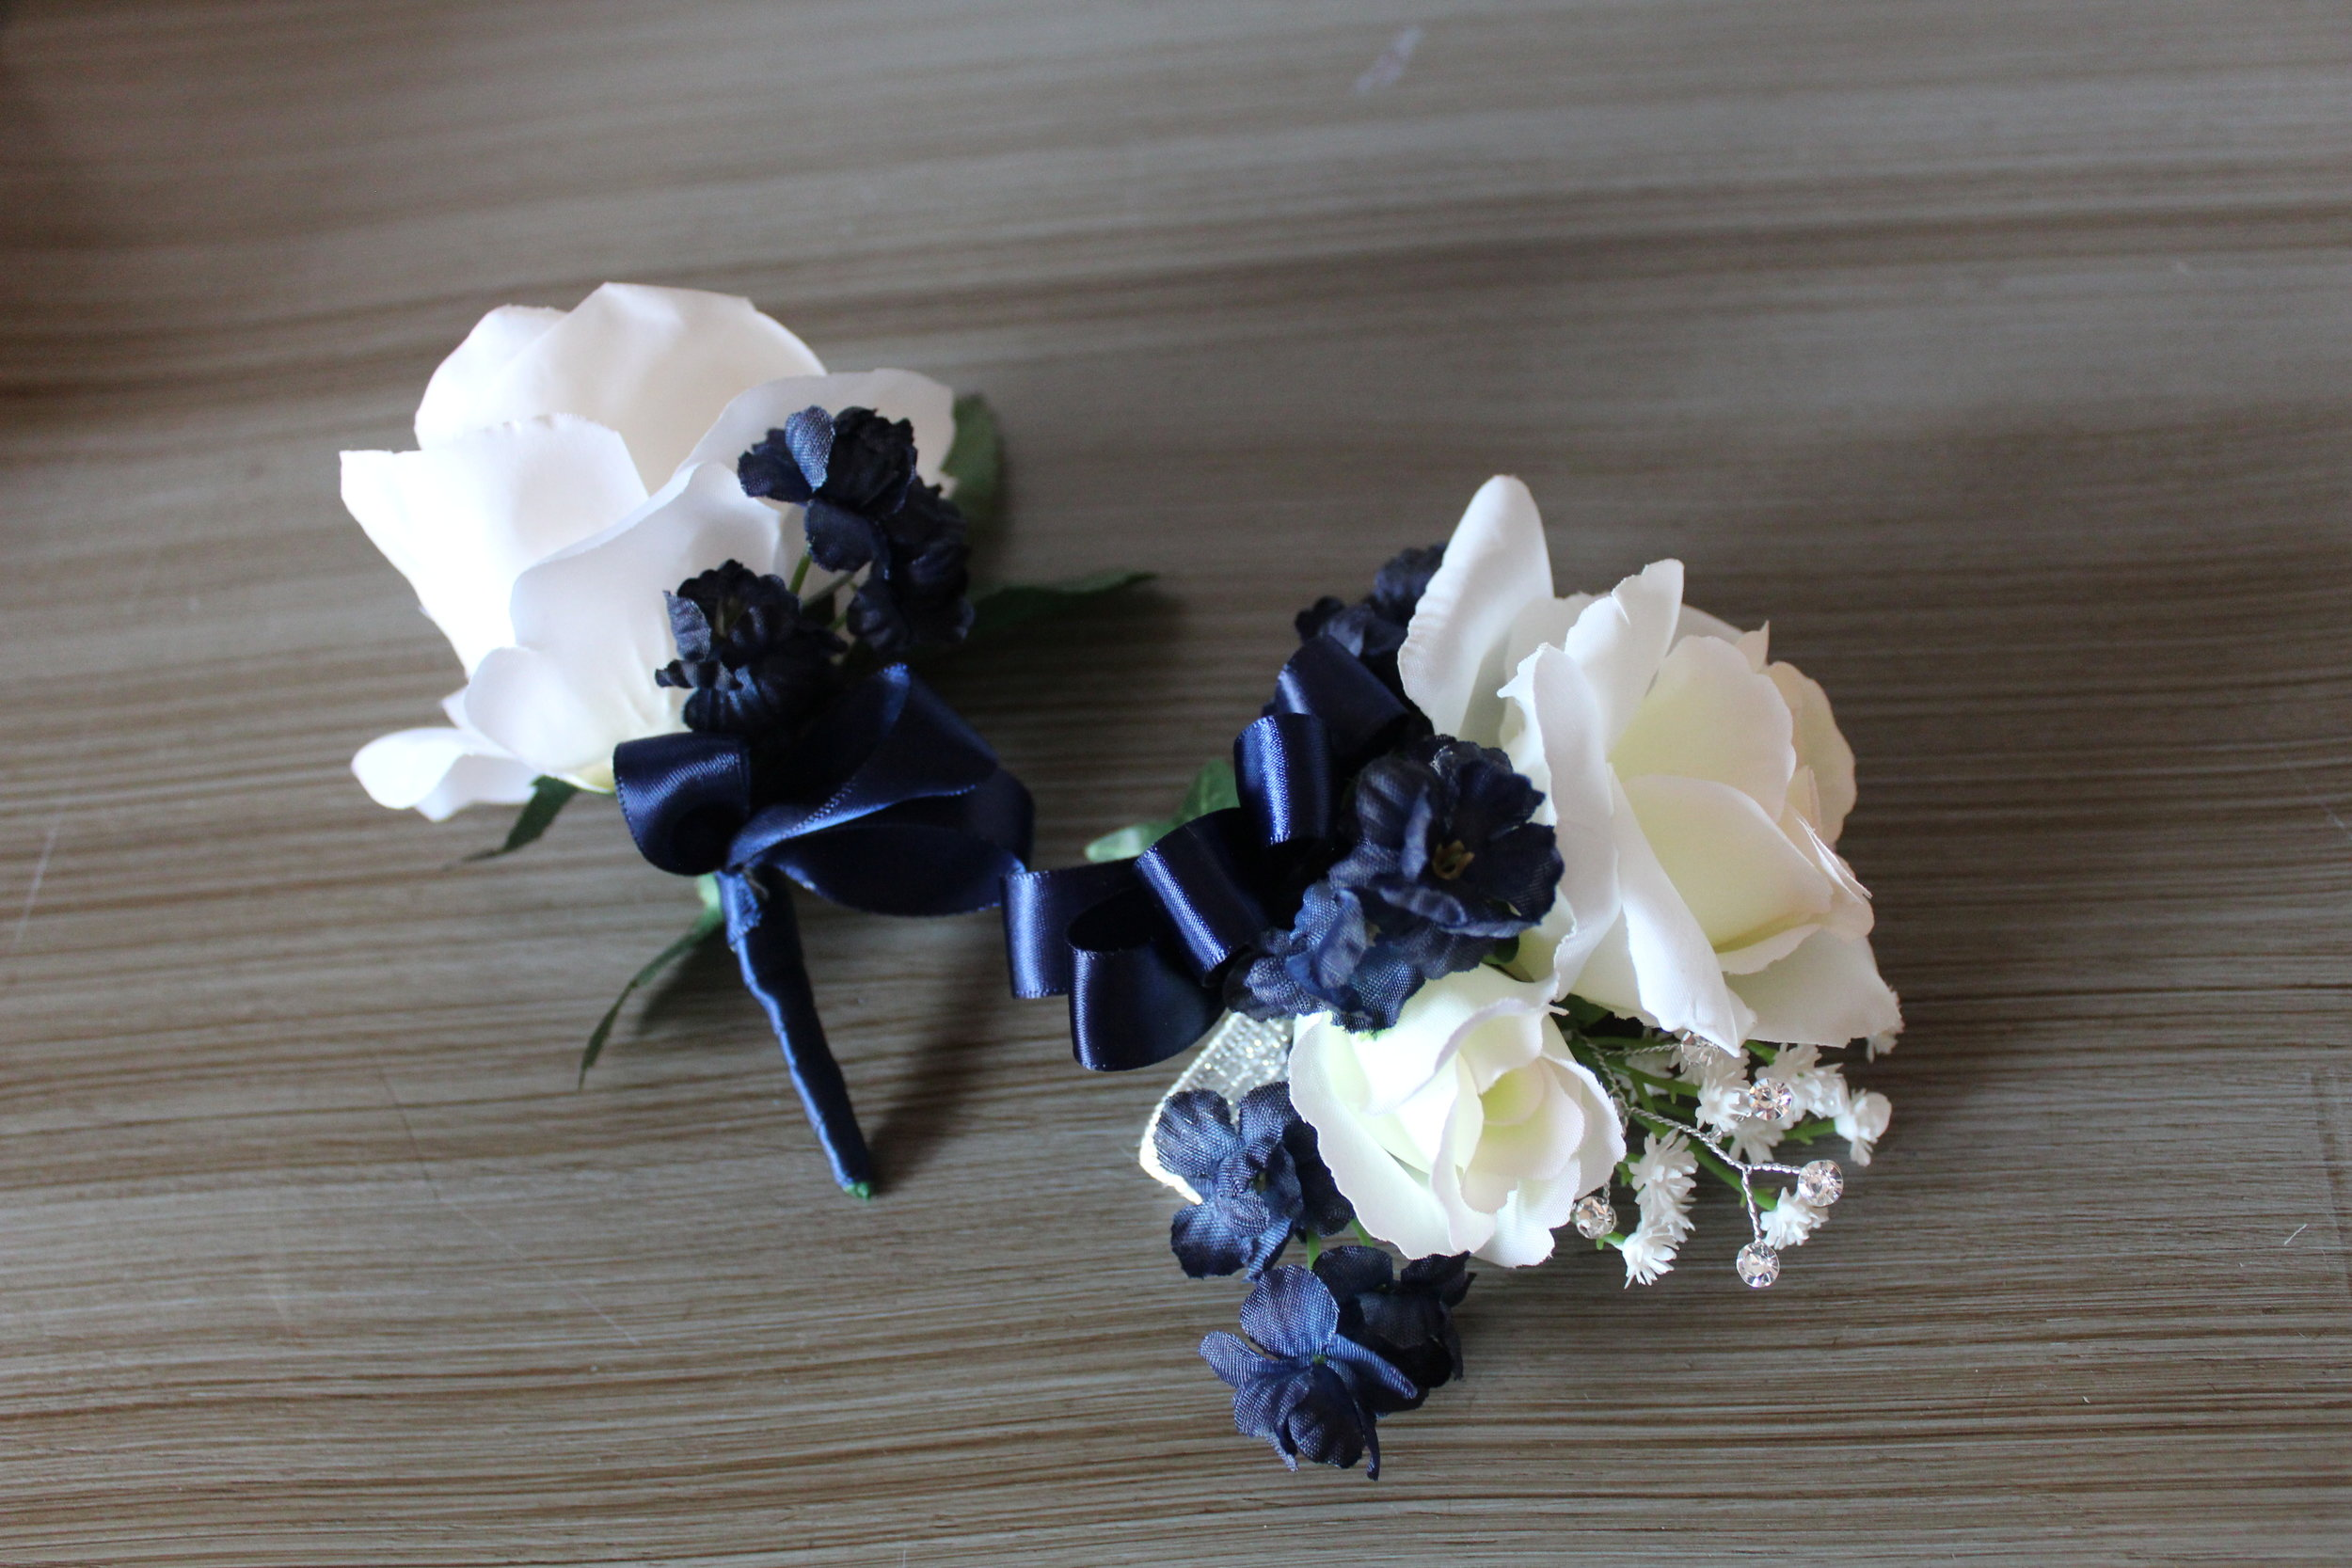 Attendant and Mothers' Corsages